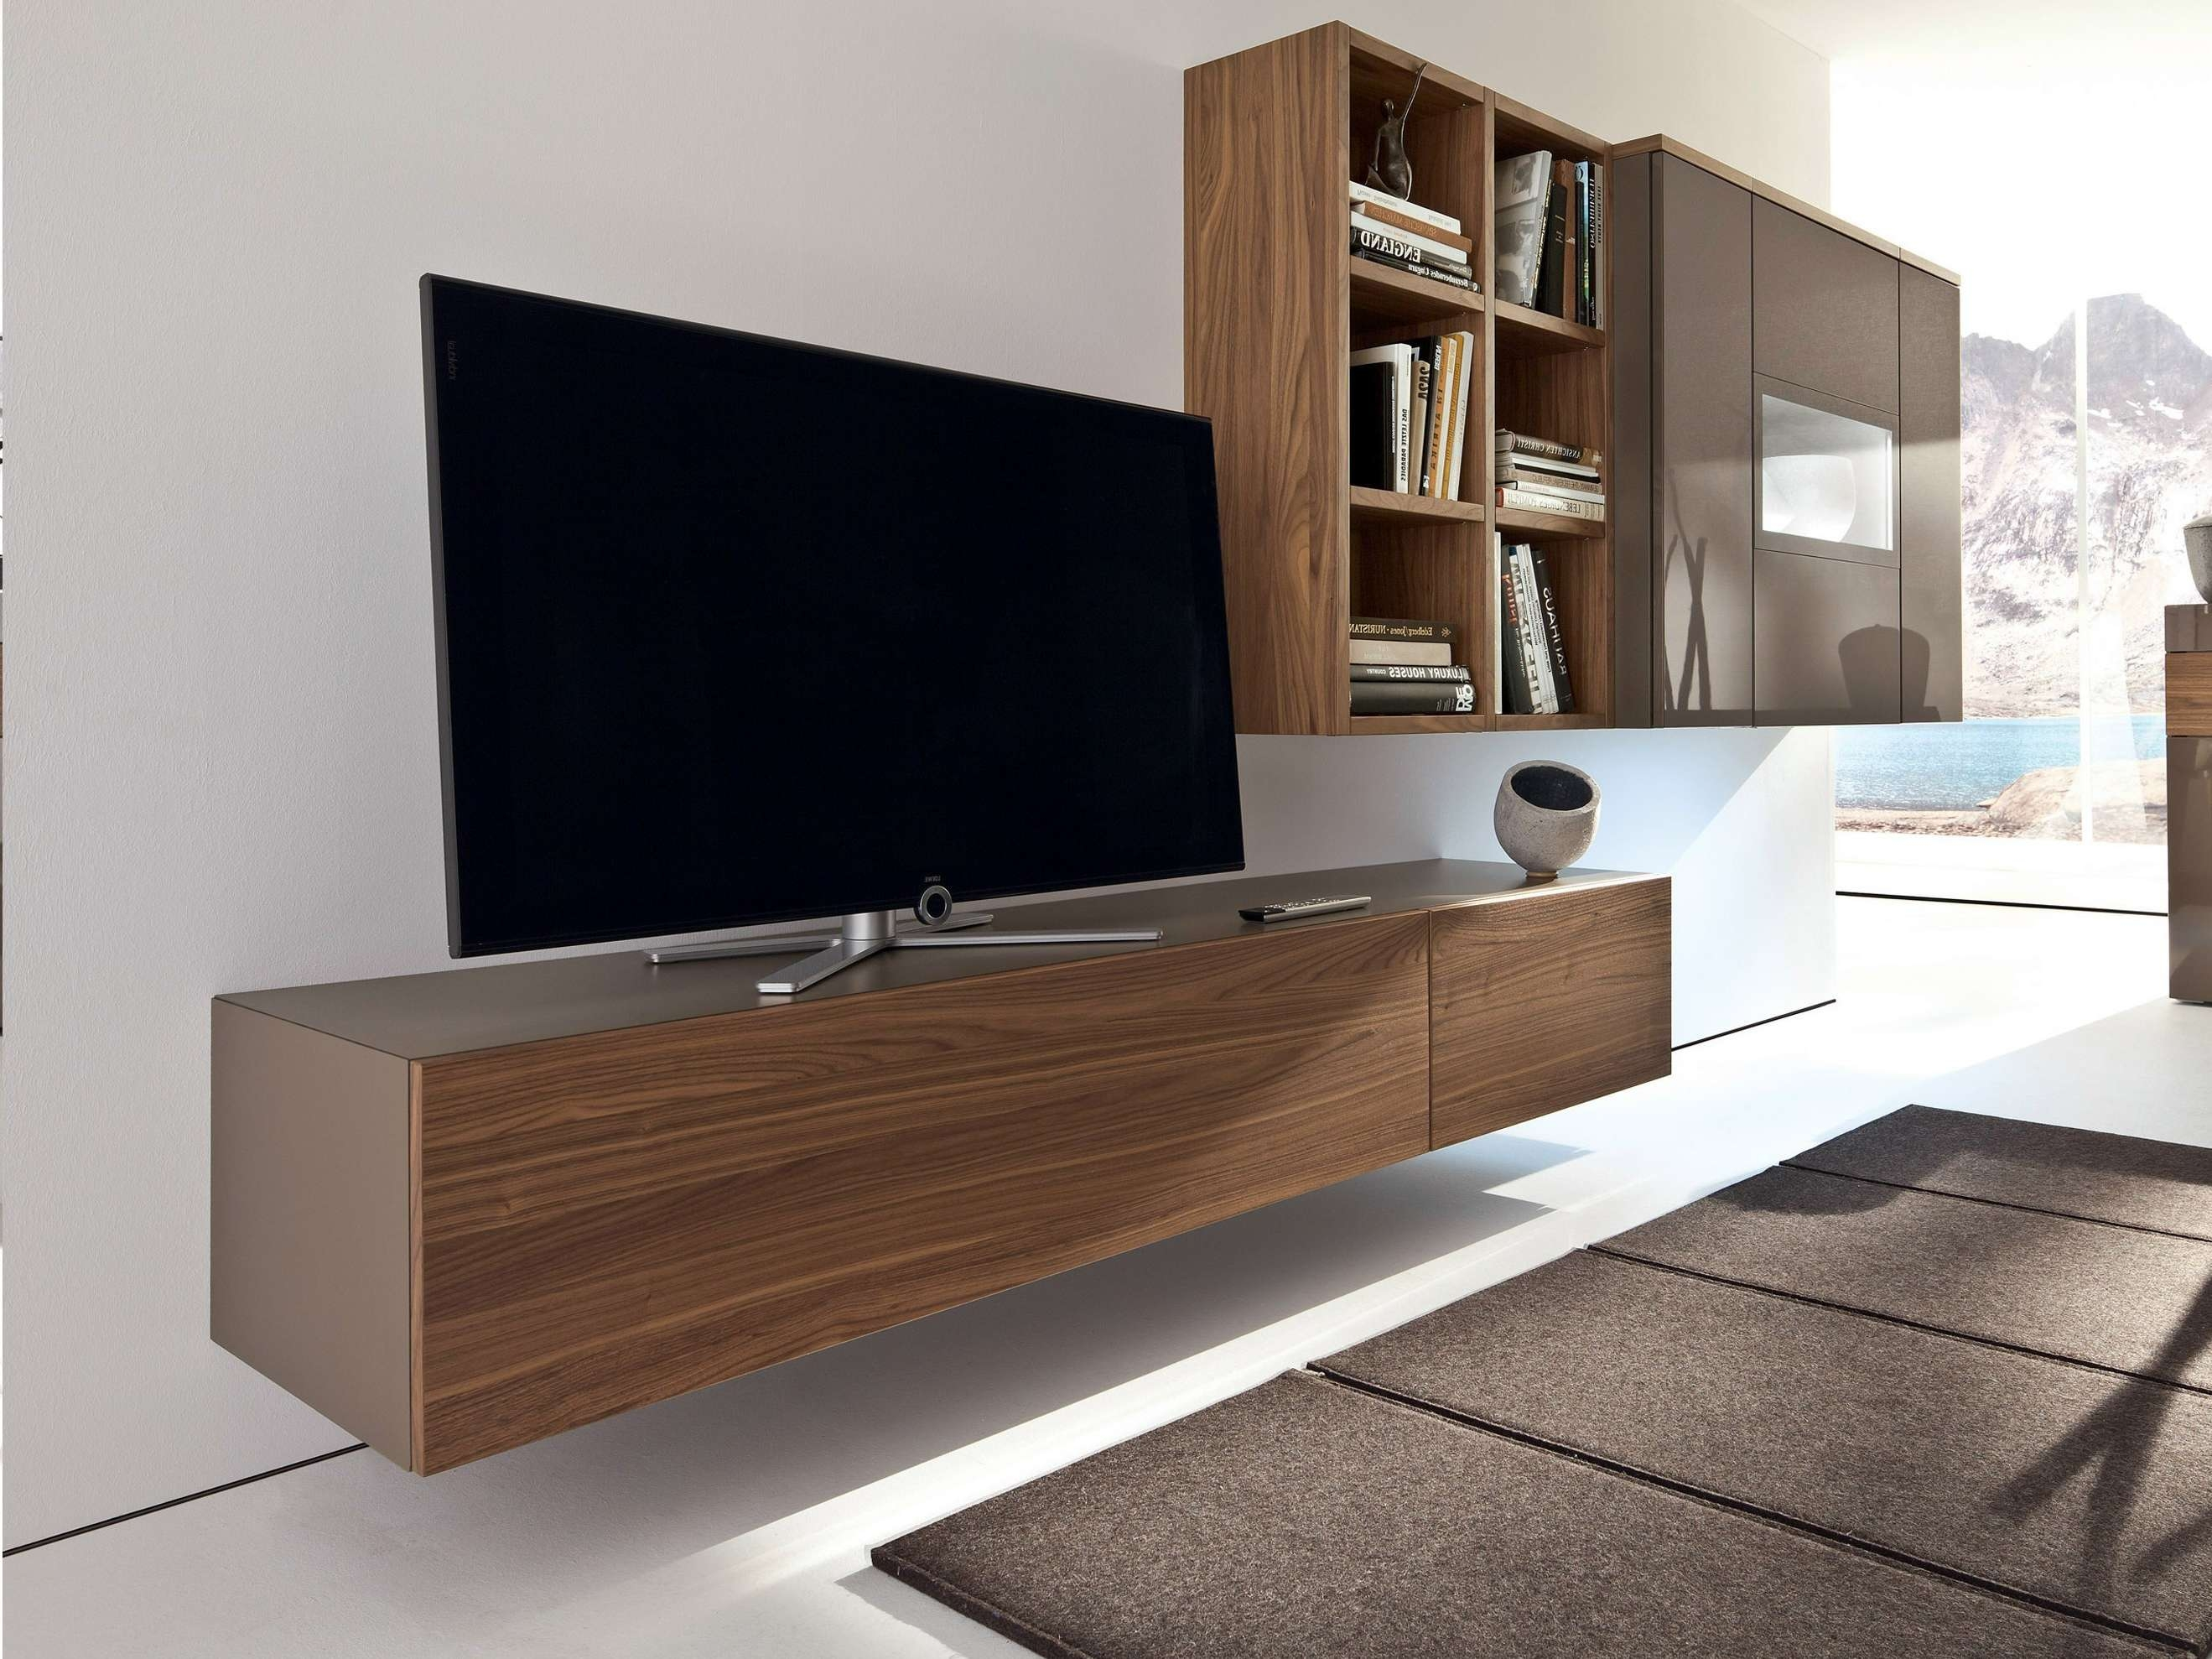 Wall Mounted Media Cabinet With Doors Brown Ebony Hardwood Intended For Floating Tv Cabinets (View 19 of 20)